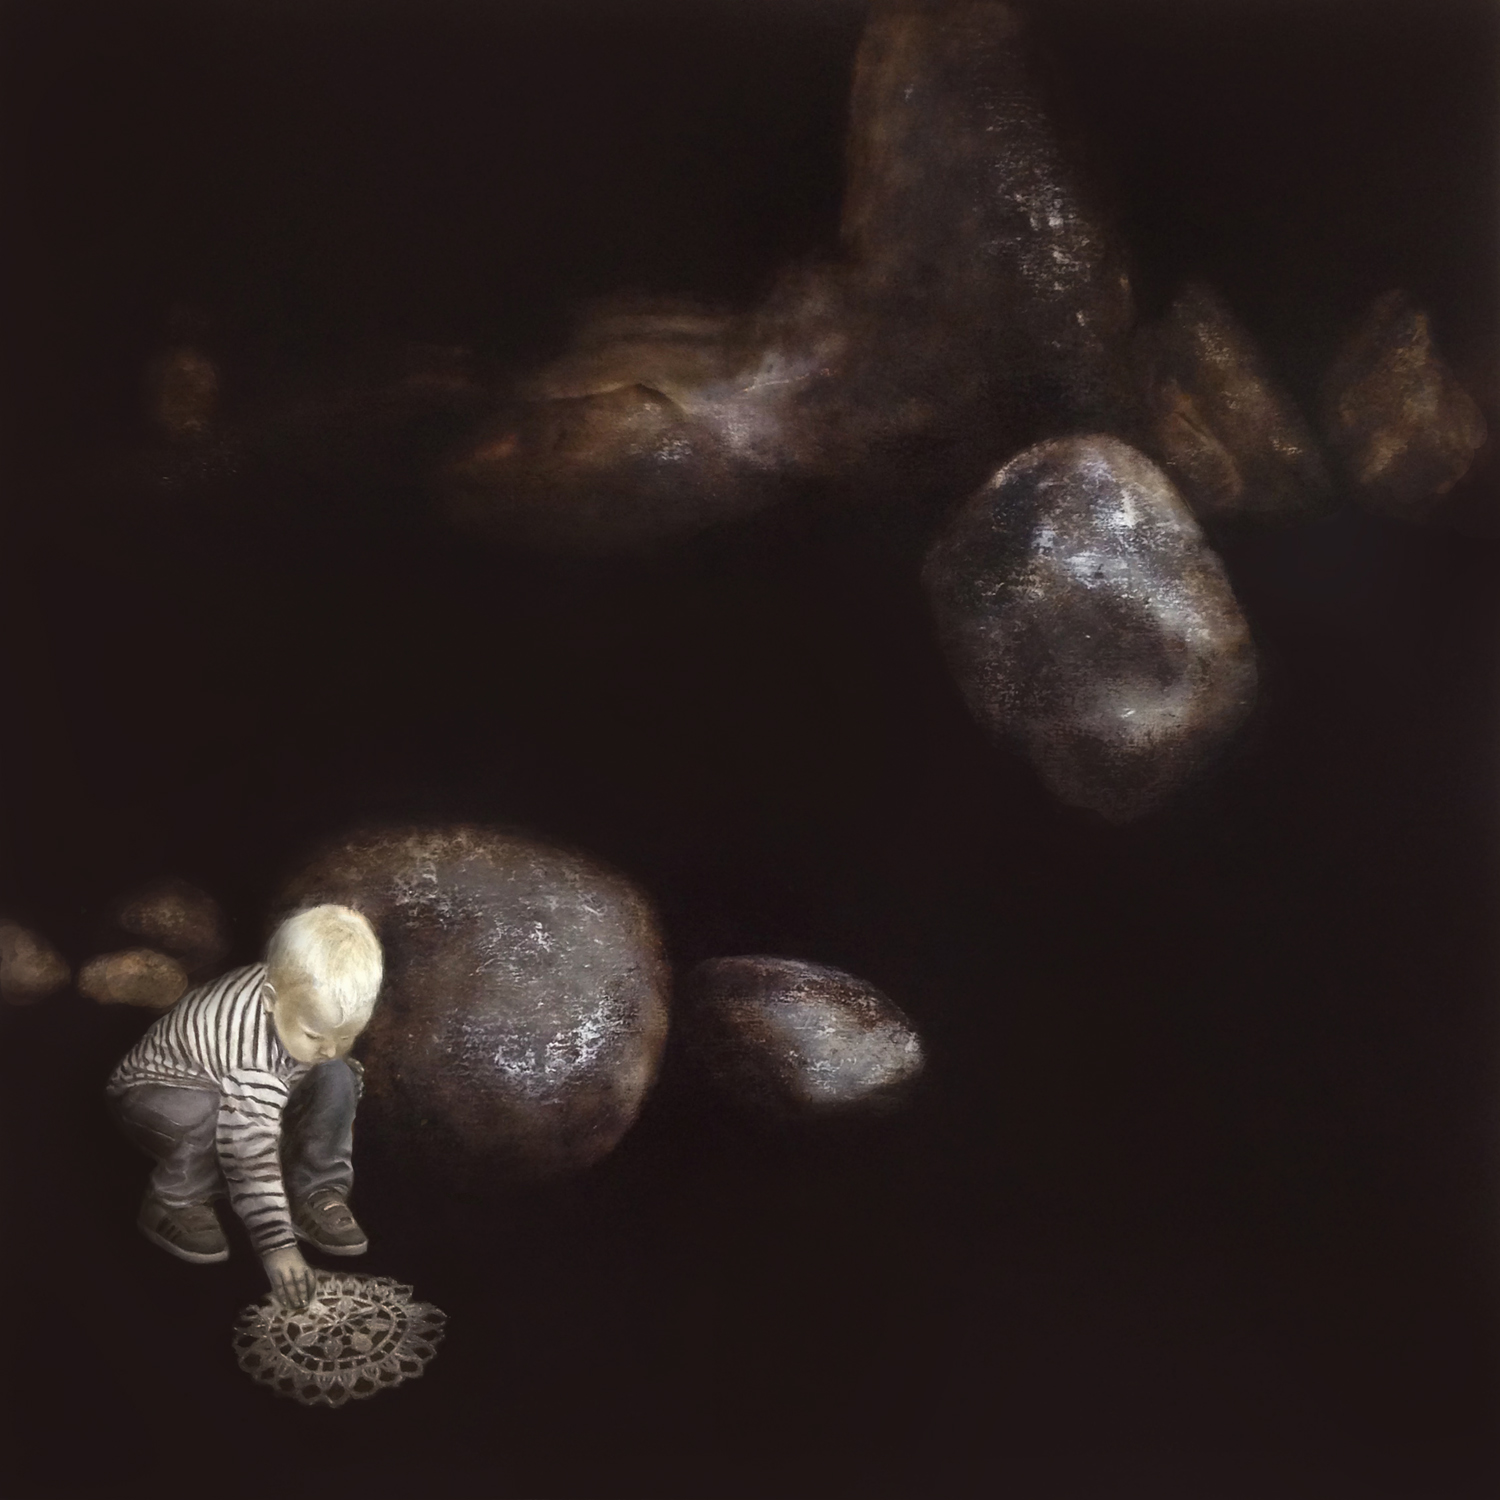 Pale & Interesting - on show as part of:Pinpoint: Banyule Contemporary Art Fair curated by Claire WatsonHatch Contemporary Art Space11 November - 13 December 2014